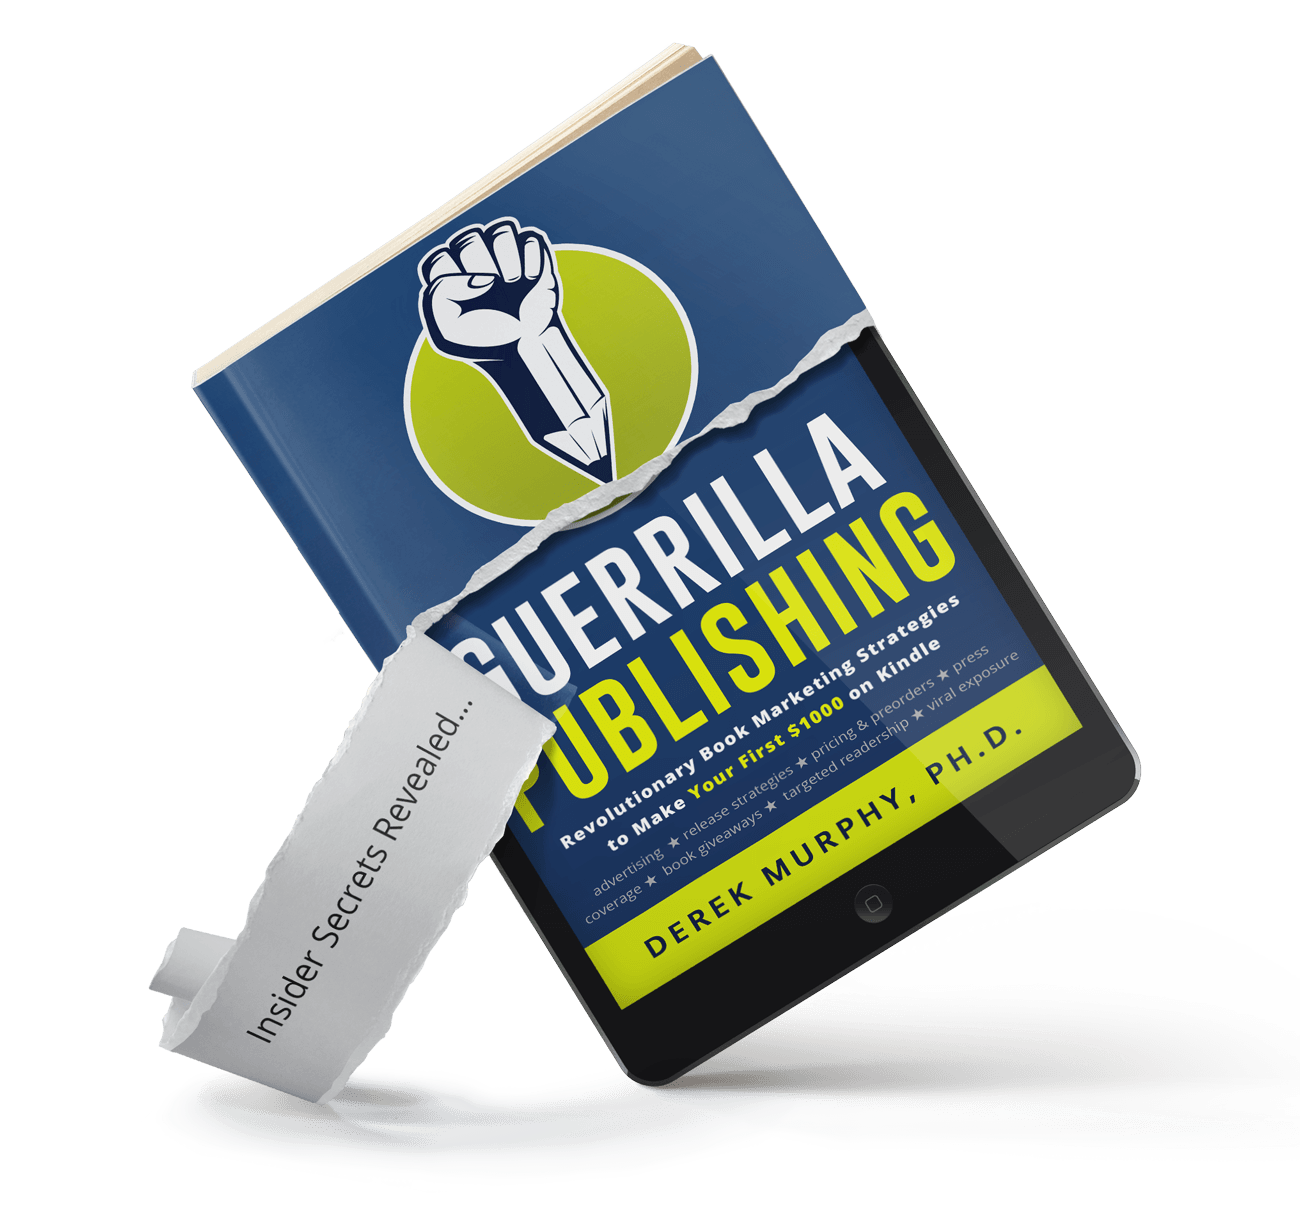 FREE BOOK: Guerrilla Publishing & Book Marketing Secrets of